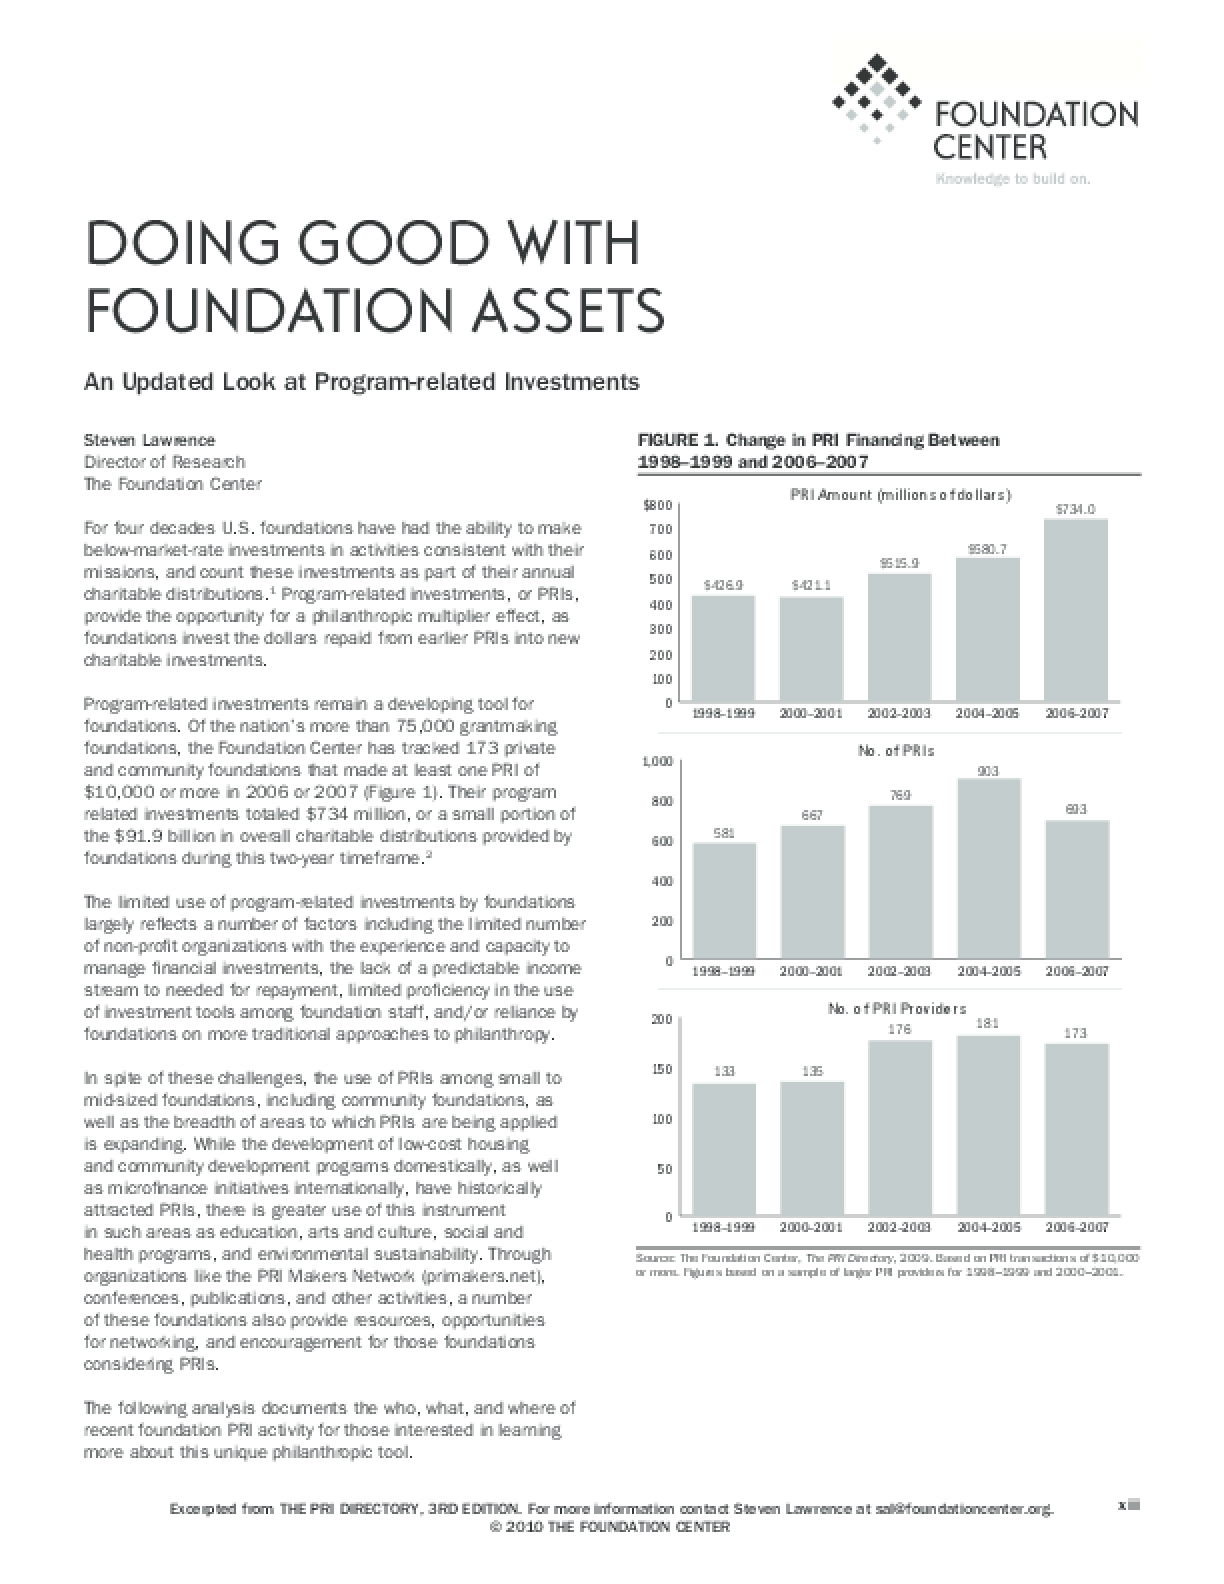 Doing Good with Foundation Assets: An Updated Look at Program-related Investments